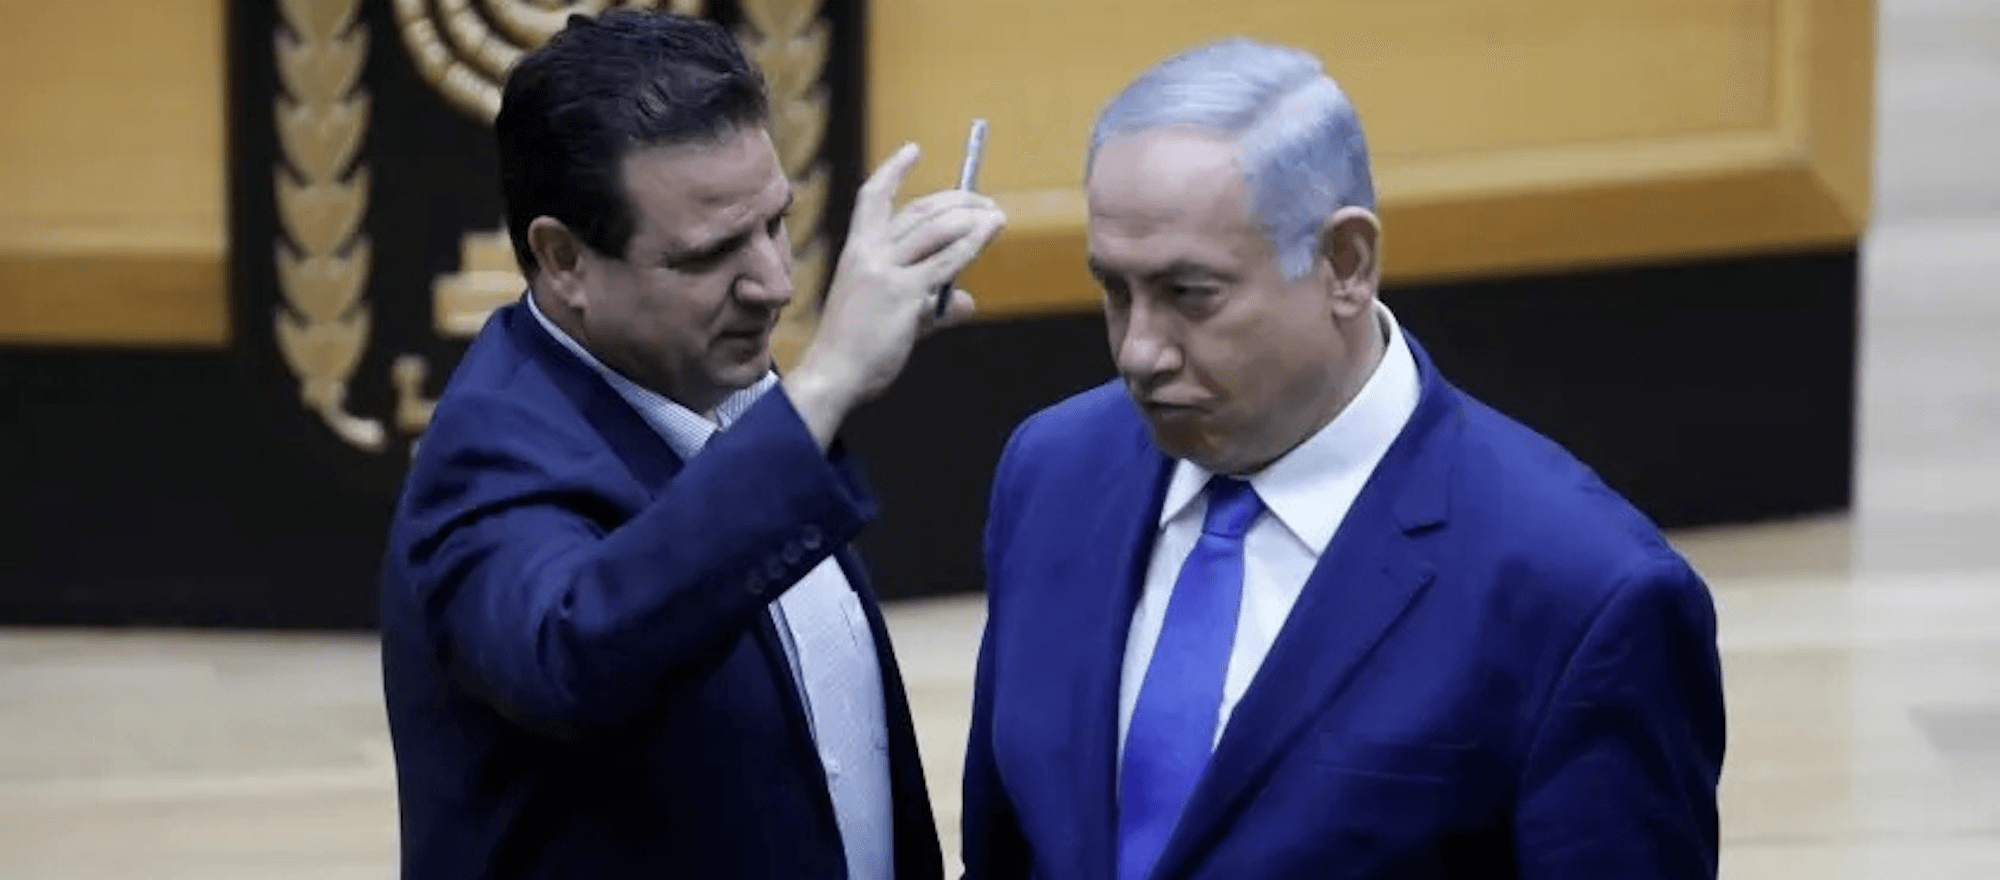 Ayman Odeh of the Joint List mocks Benjamin Netanyahu on the Knesset floor last week over Netanyahu's threat to put cameras in polling places, to intimidate Palestinian voters.